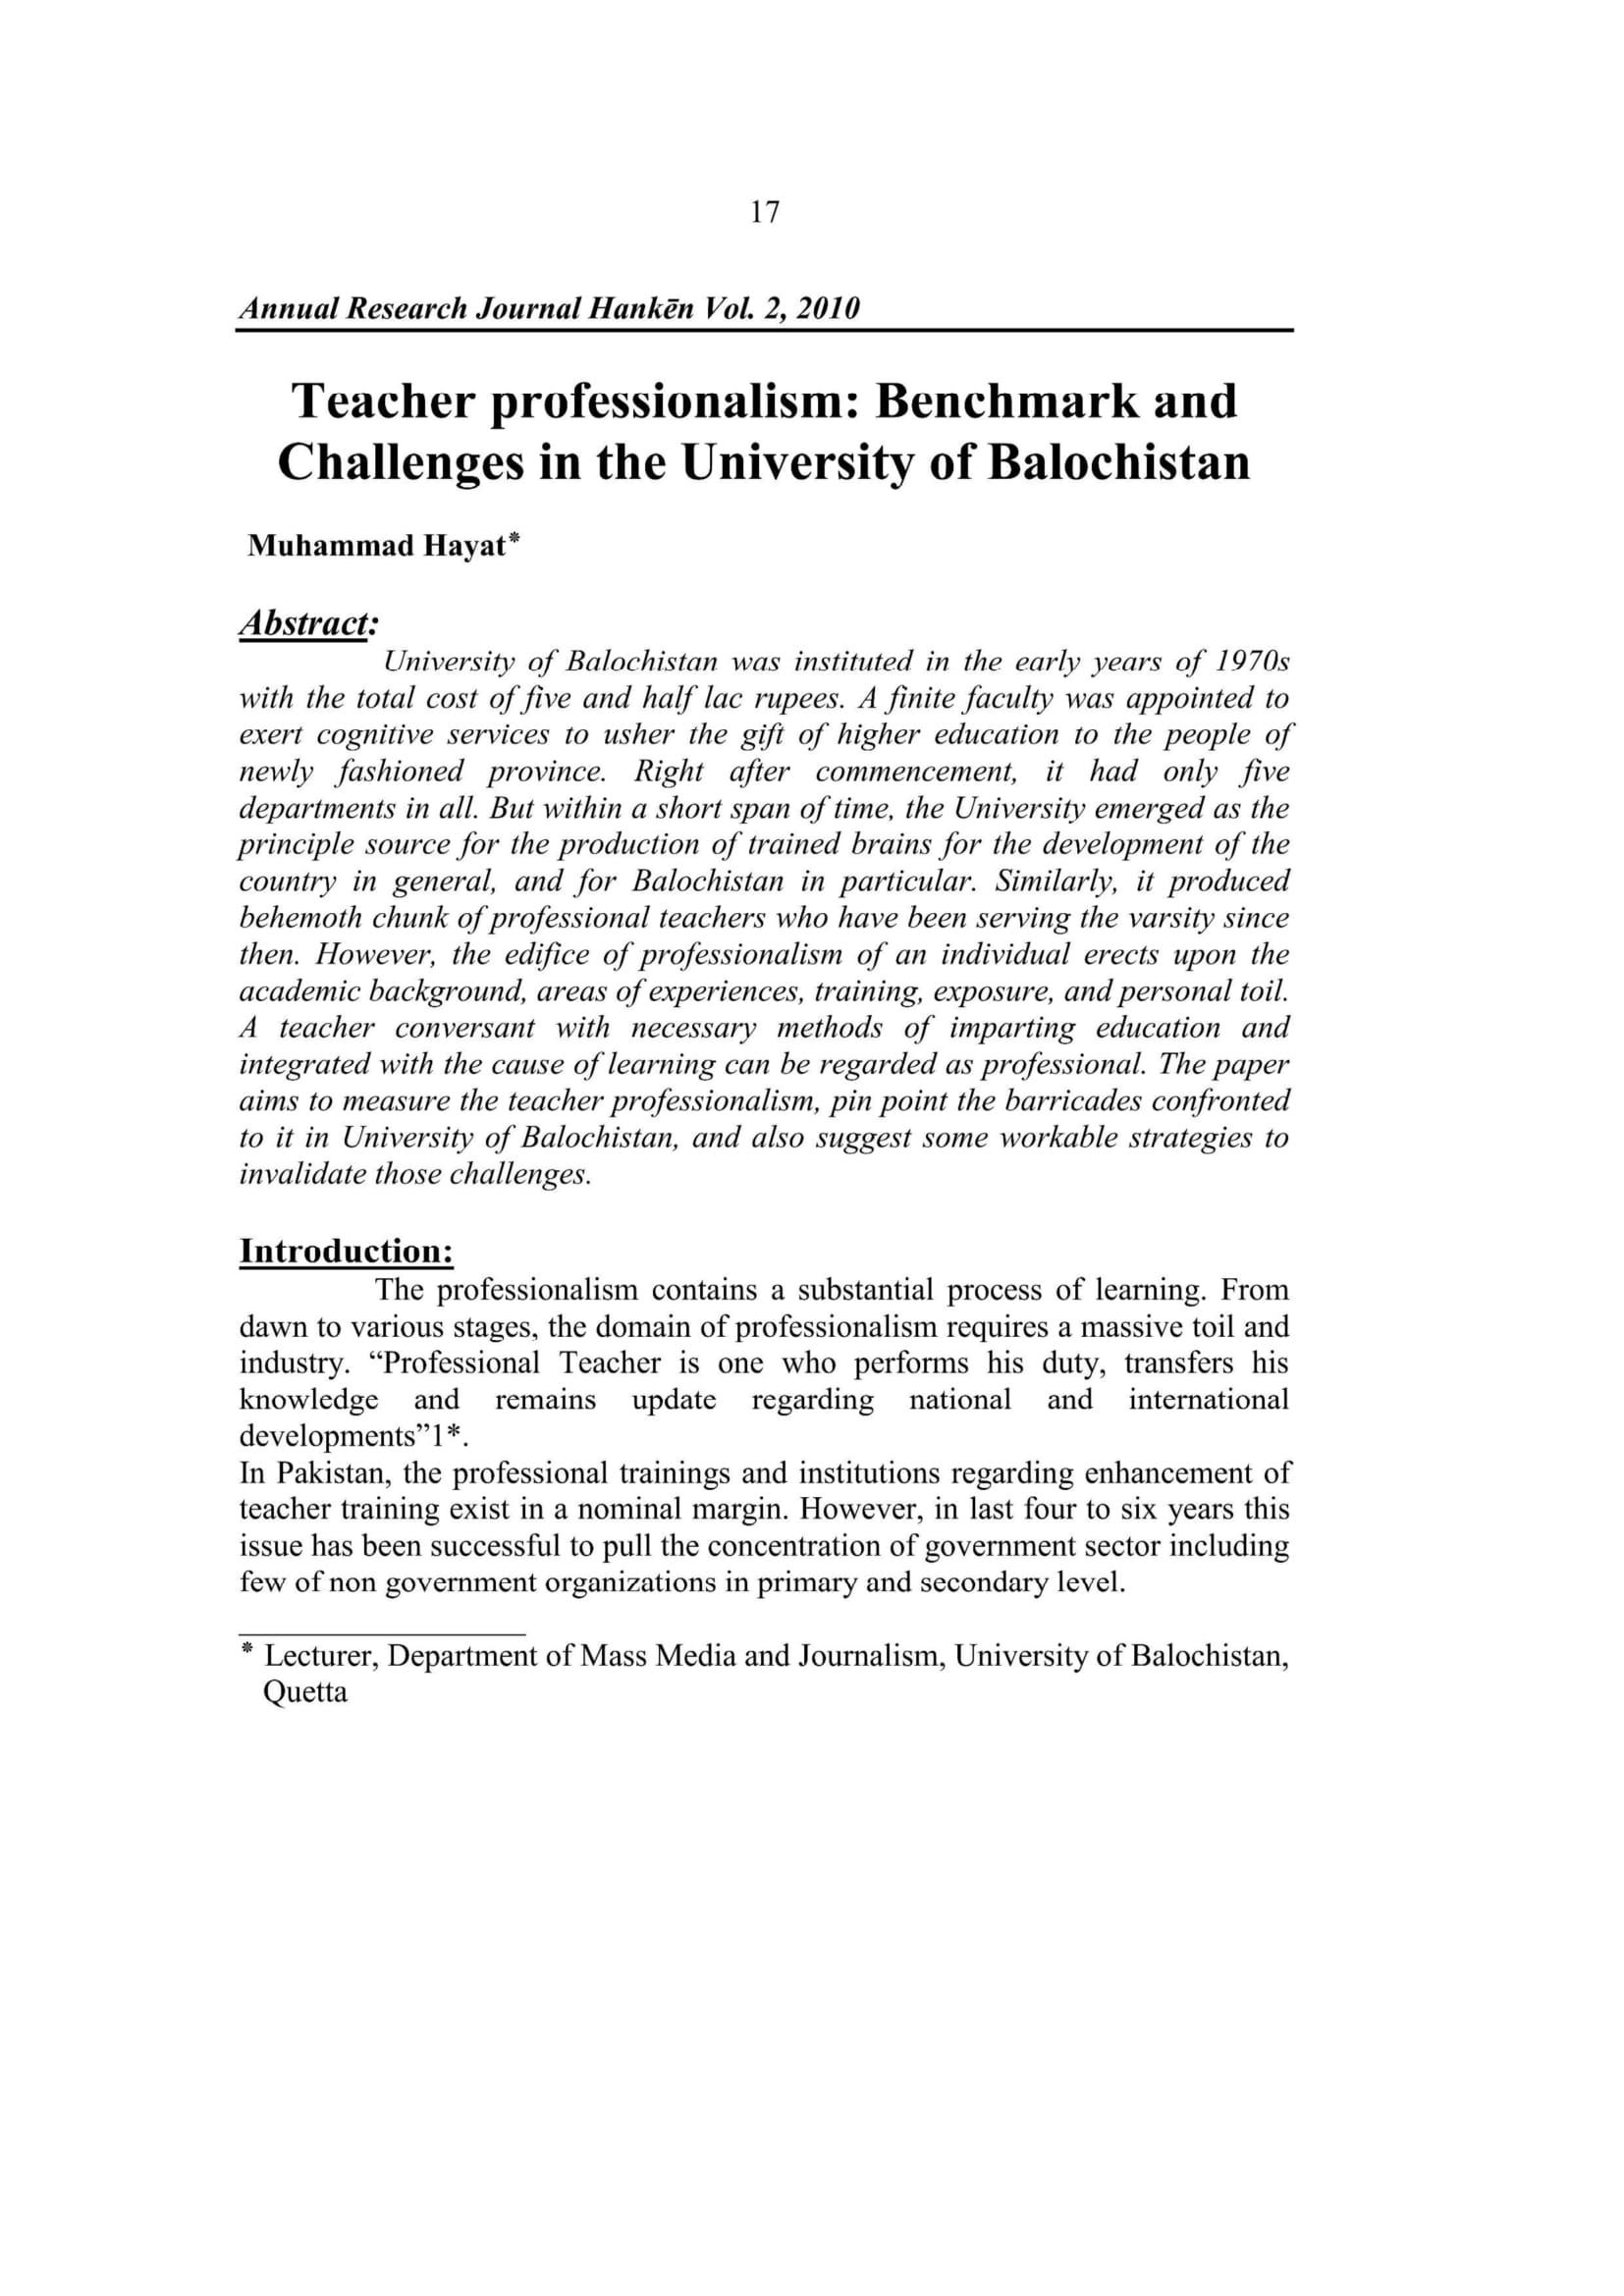 Teacher professionalism: Benchmark and Challenges in the University of Balochistan